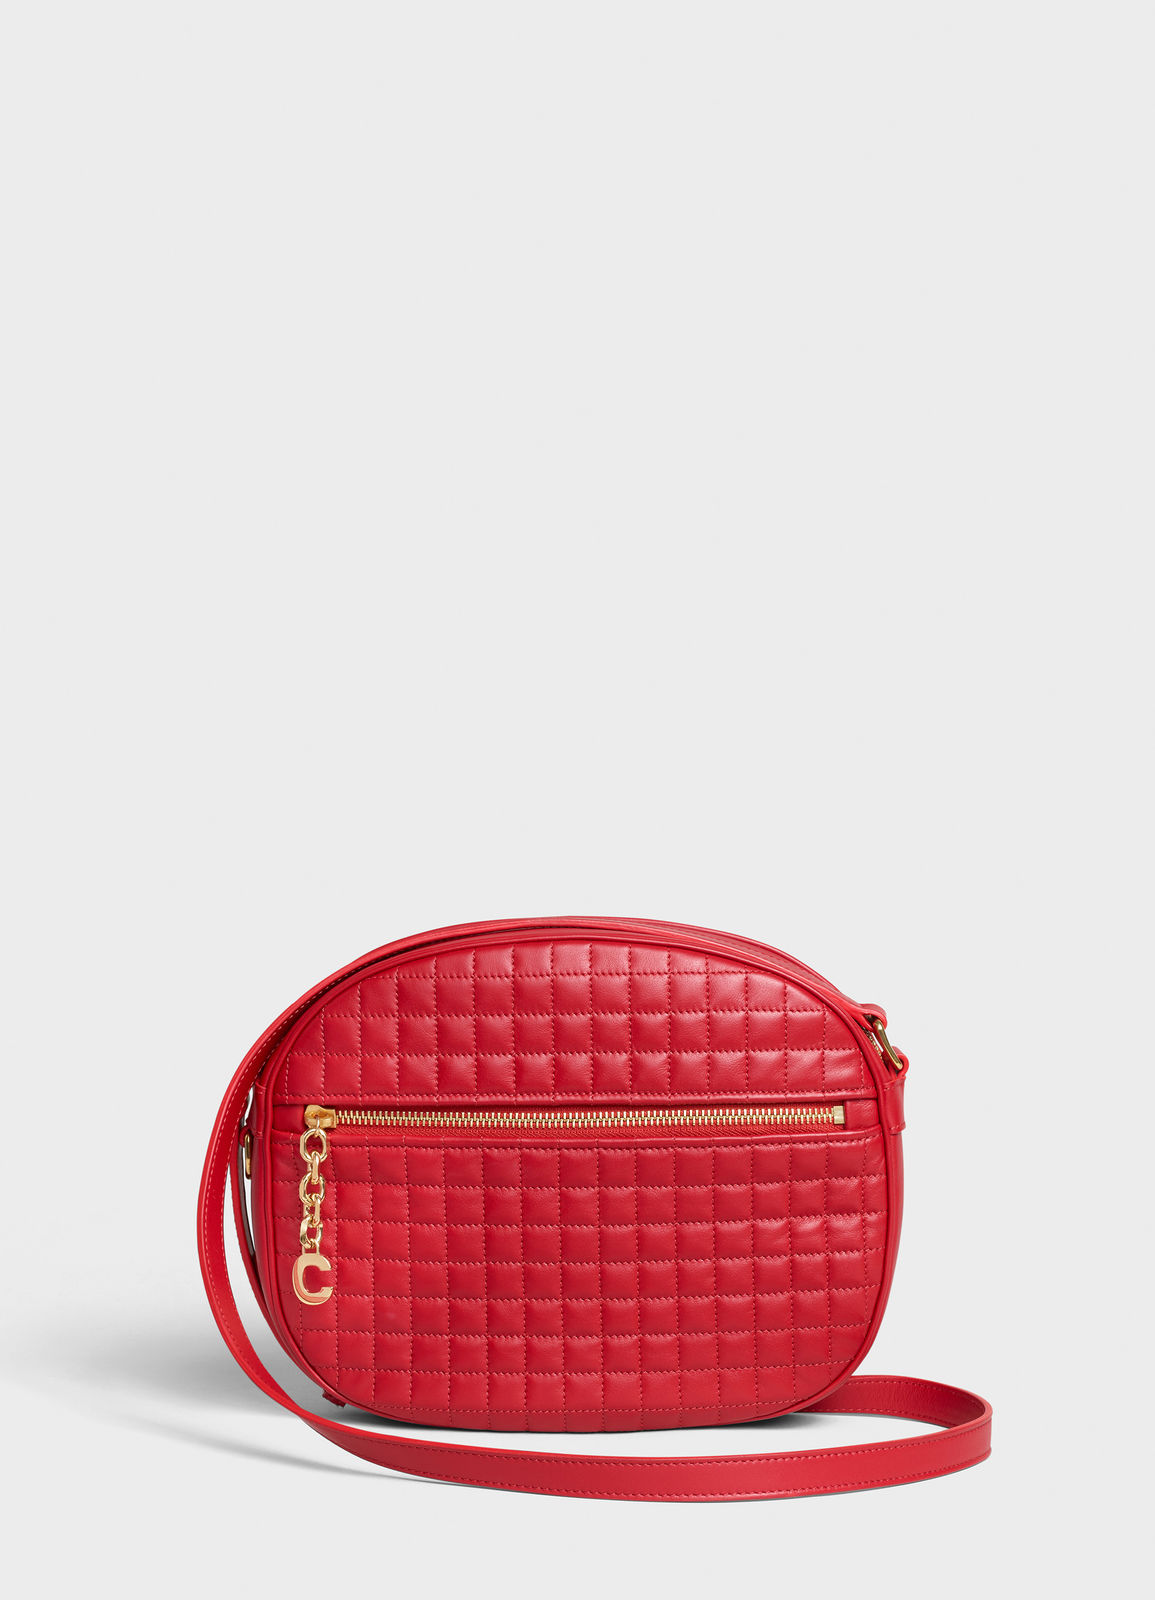 CELINE CROSS BODY MEDIUM C CHARM BAG IN QUILTED CALFSKIN 188353 red